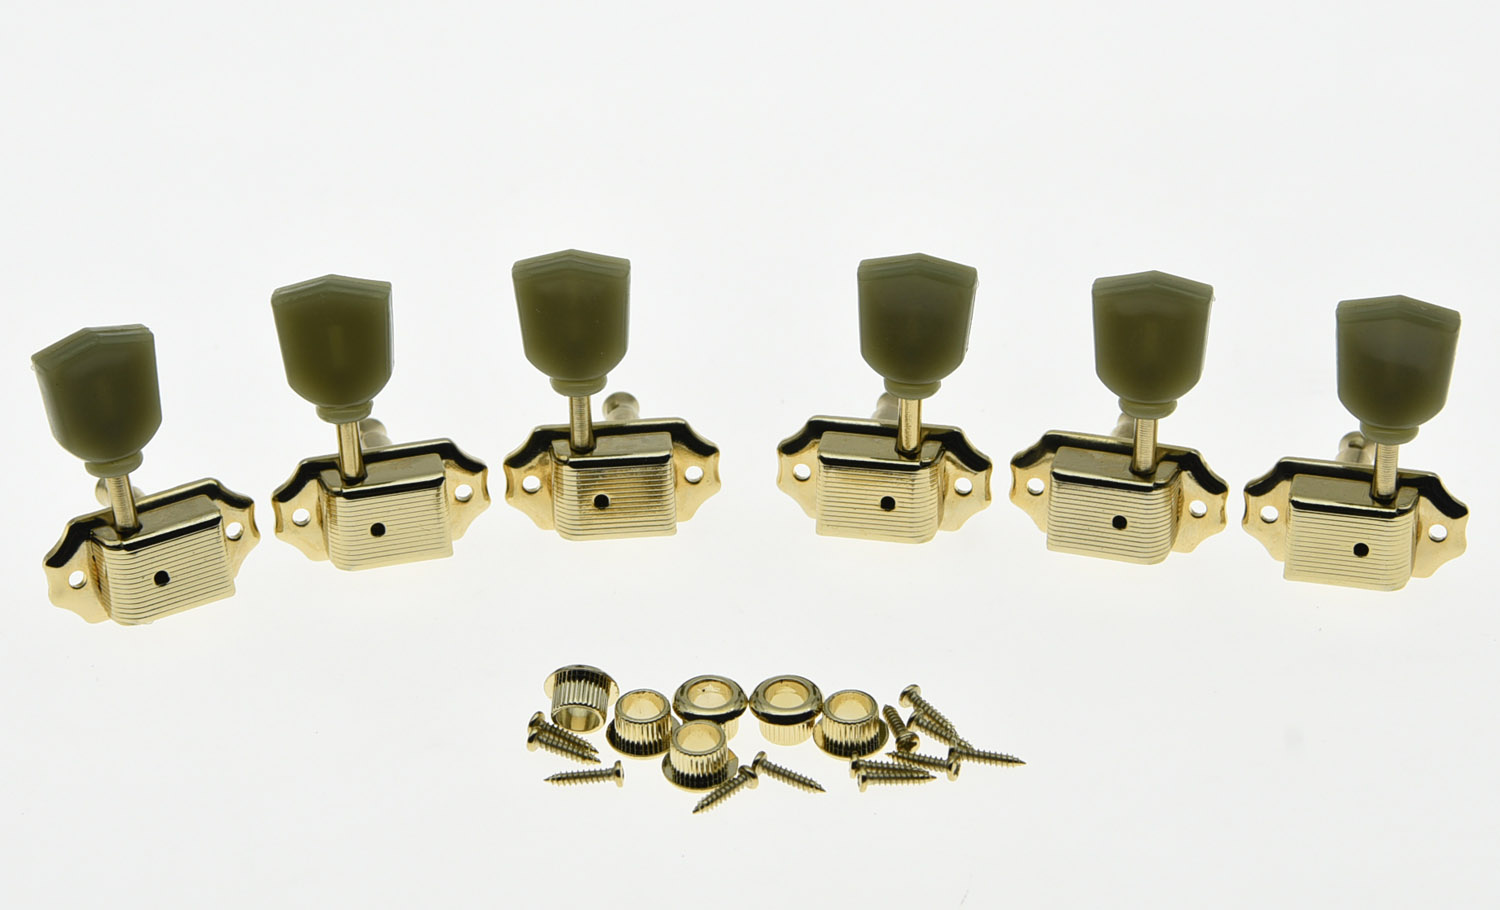 KAISH Gold 3L3R Deluxe Tuning Pegs Keys Guitar Tuners Machine Heads Fits LP kaish wilkinson 3x3 deluxe vintage tuners tuning keys machine head for lp chrome